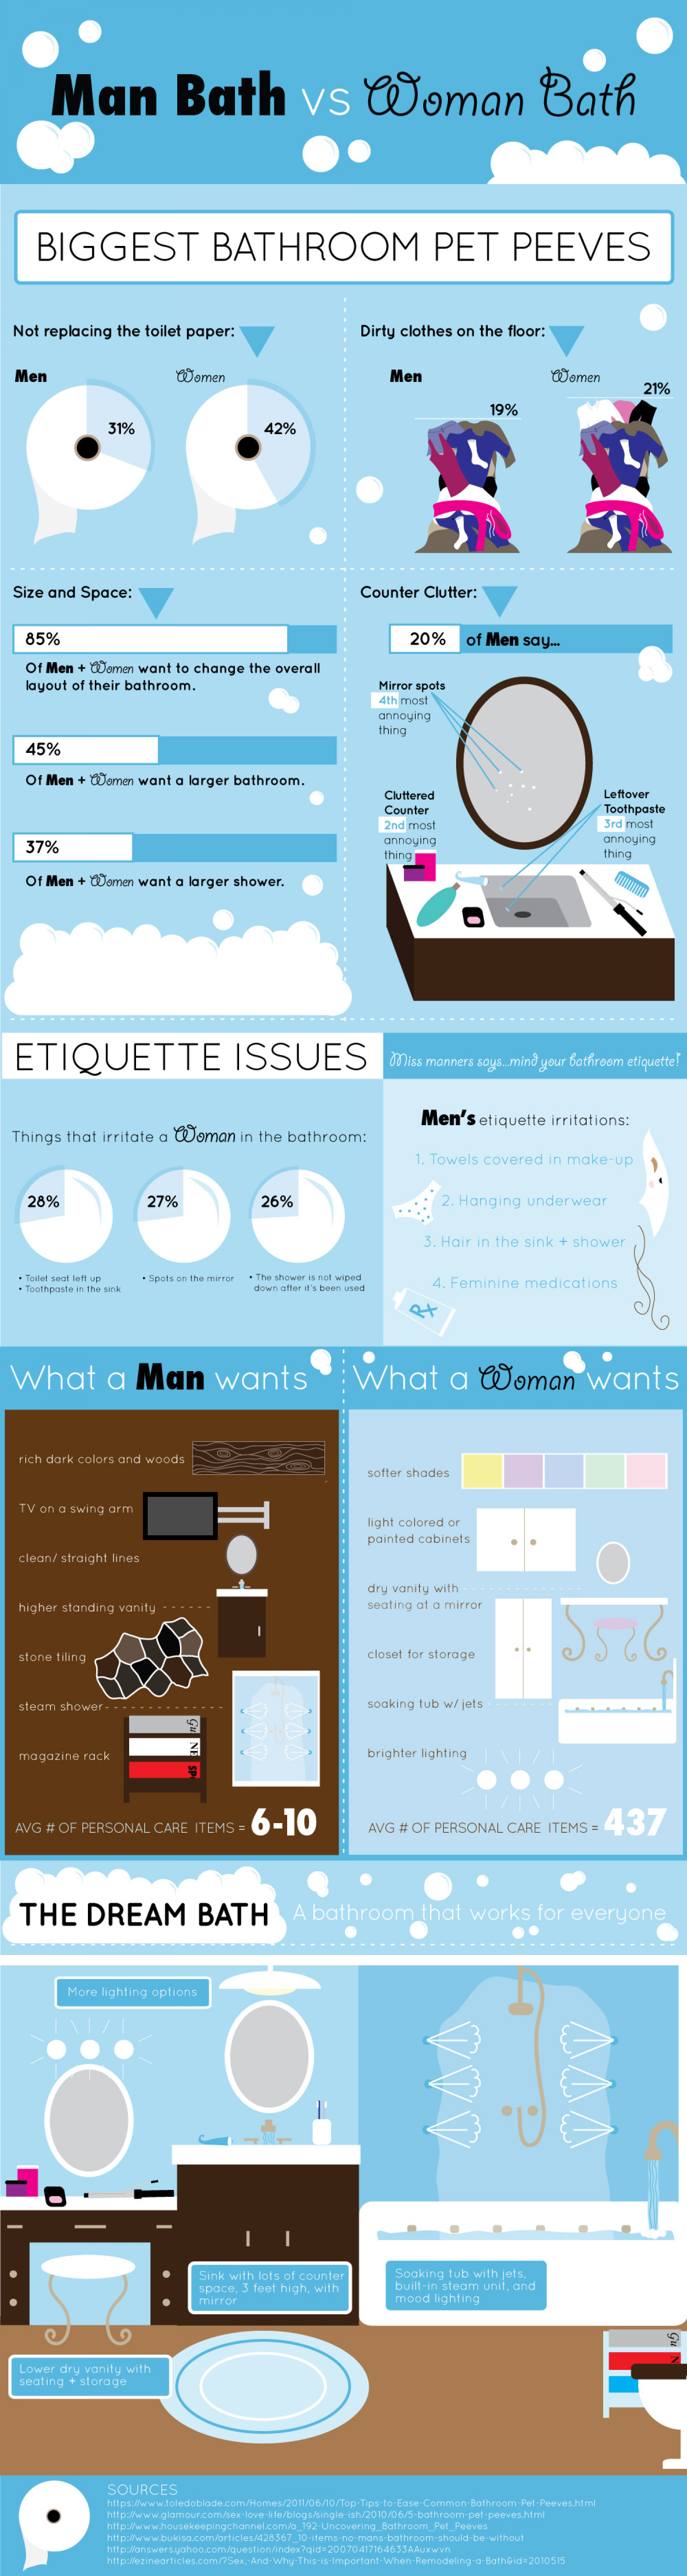 The Man Bath versus The Woman Bath Infographic